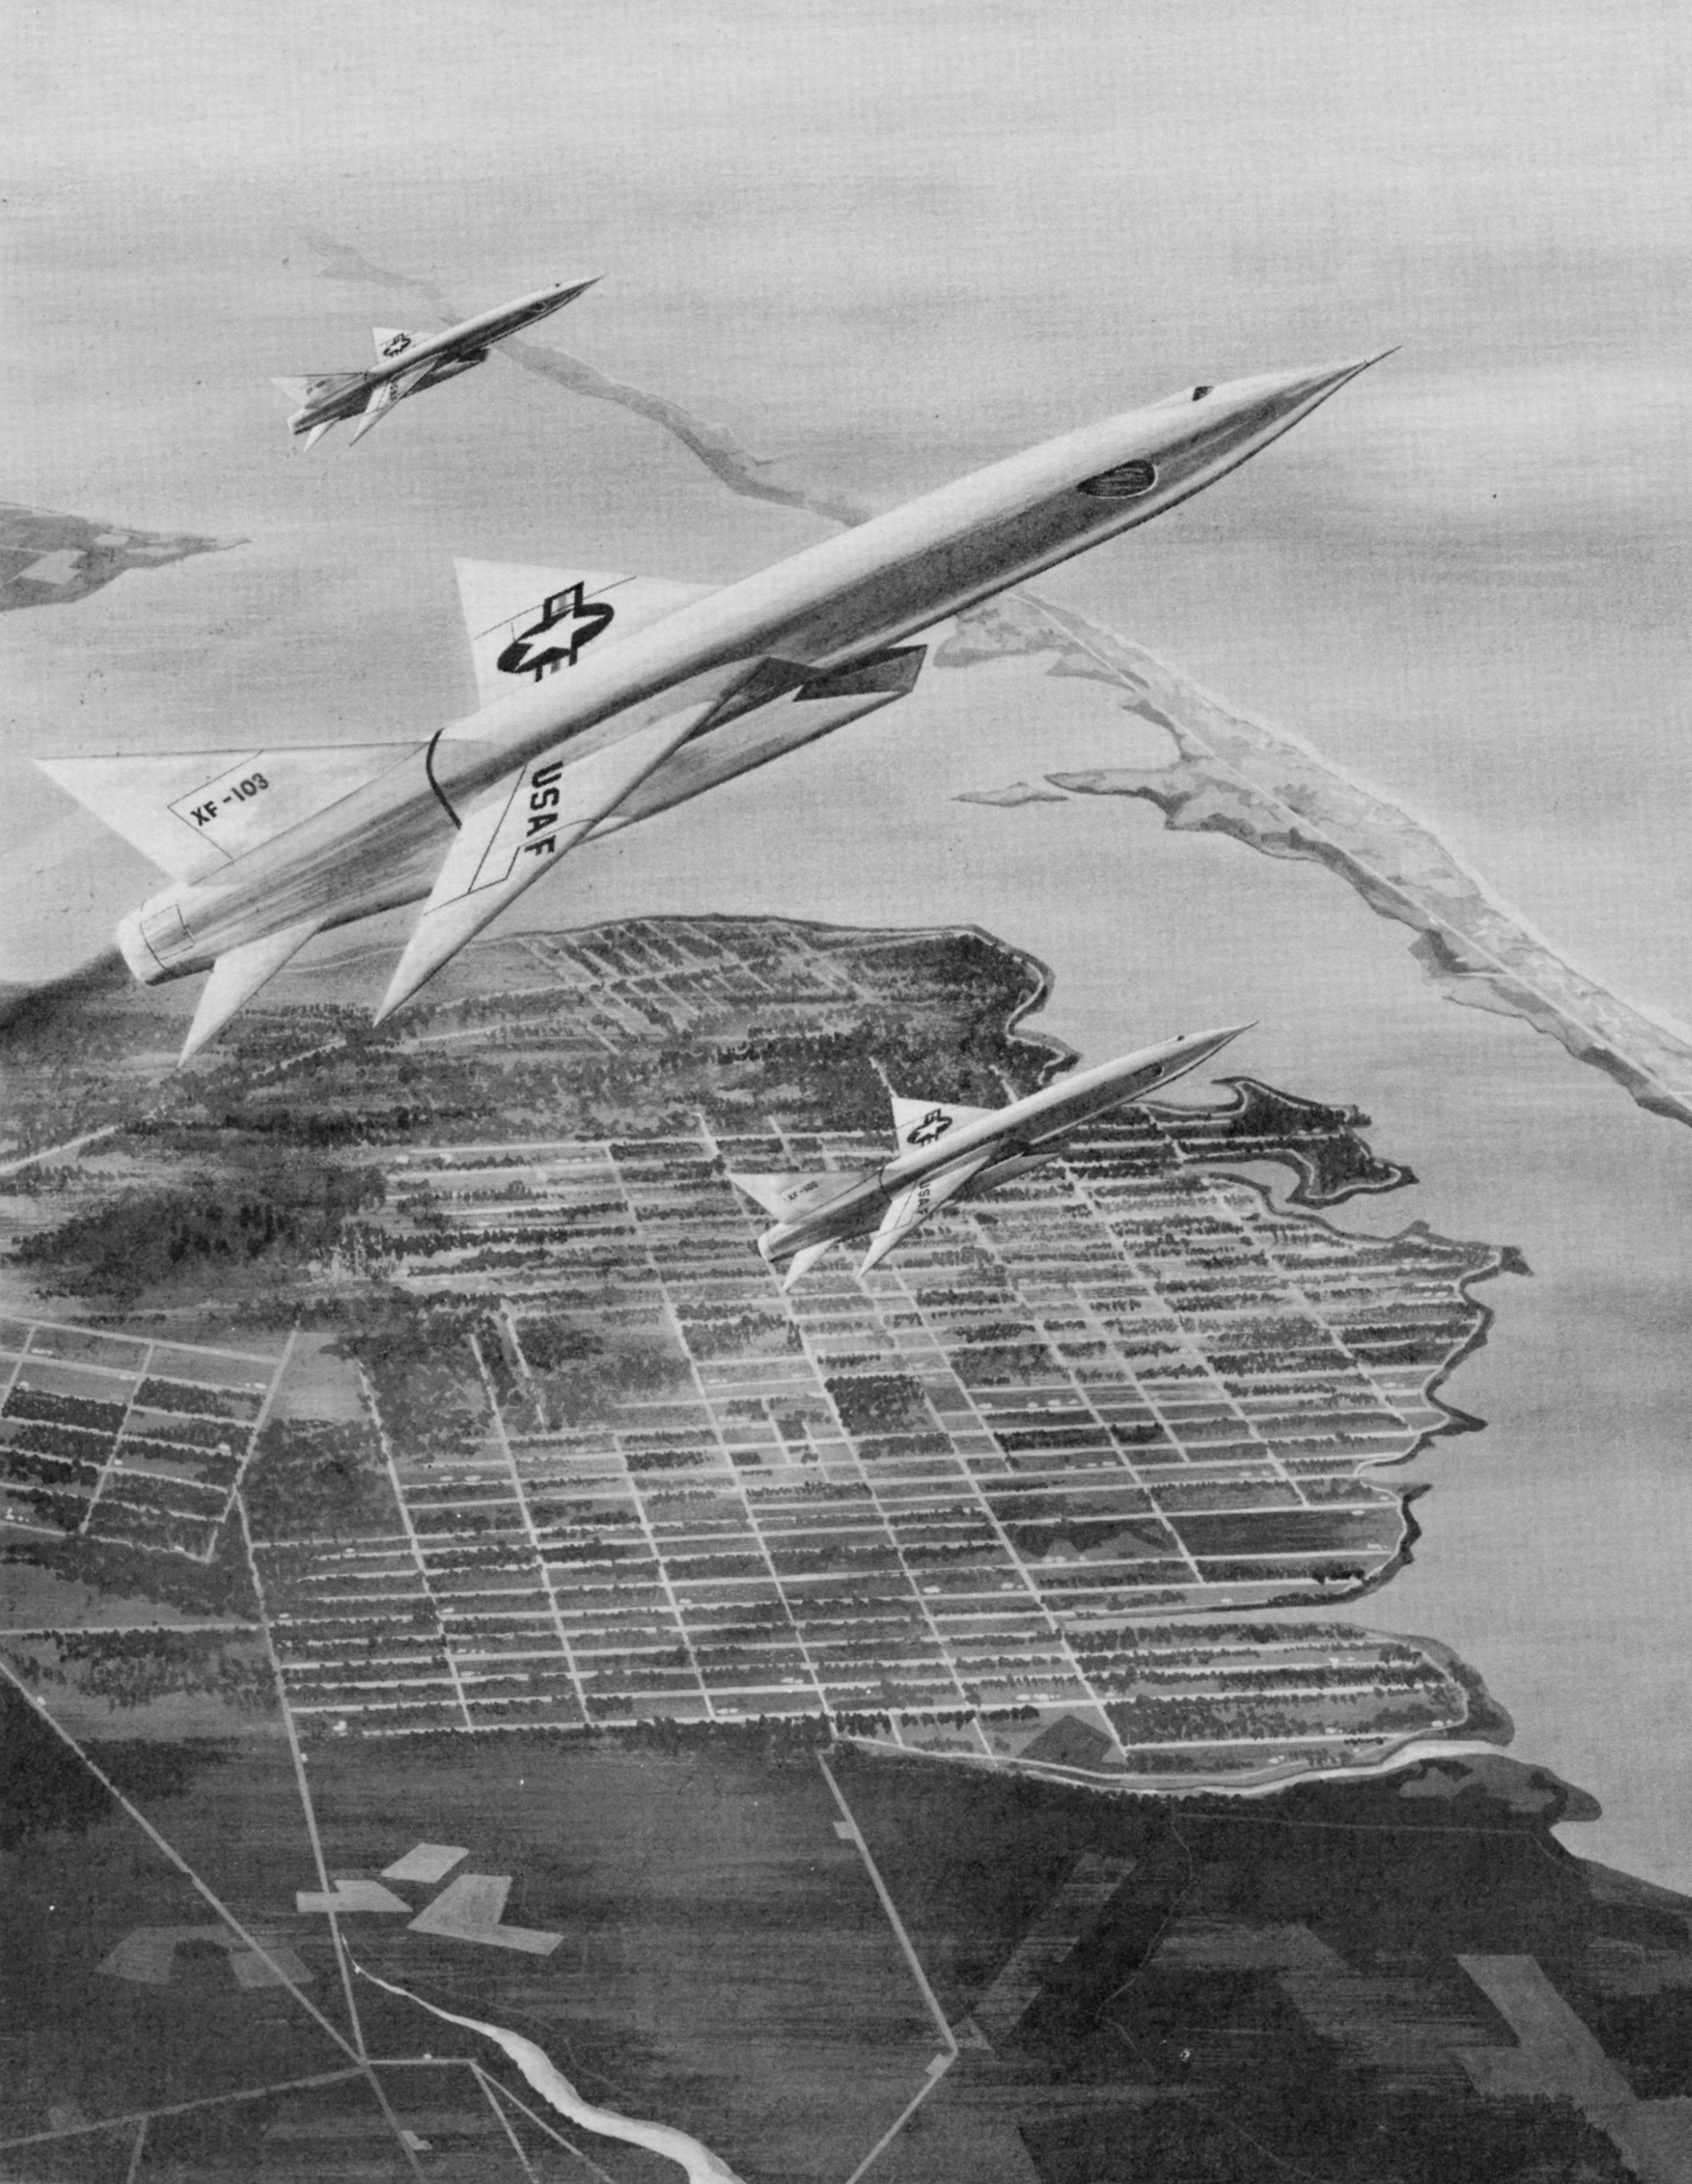 Artist concept of three Republic F-103 aircraft departing their base to perform an intercept mission off of the United States coast. (National Archives, St. Louis)